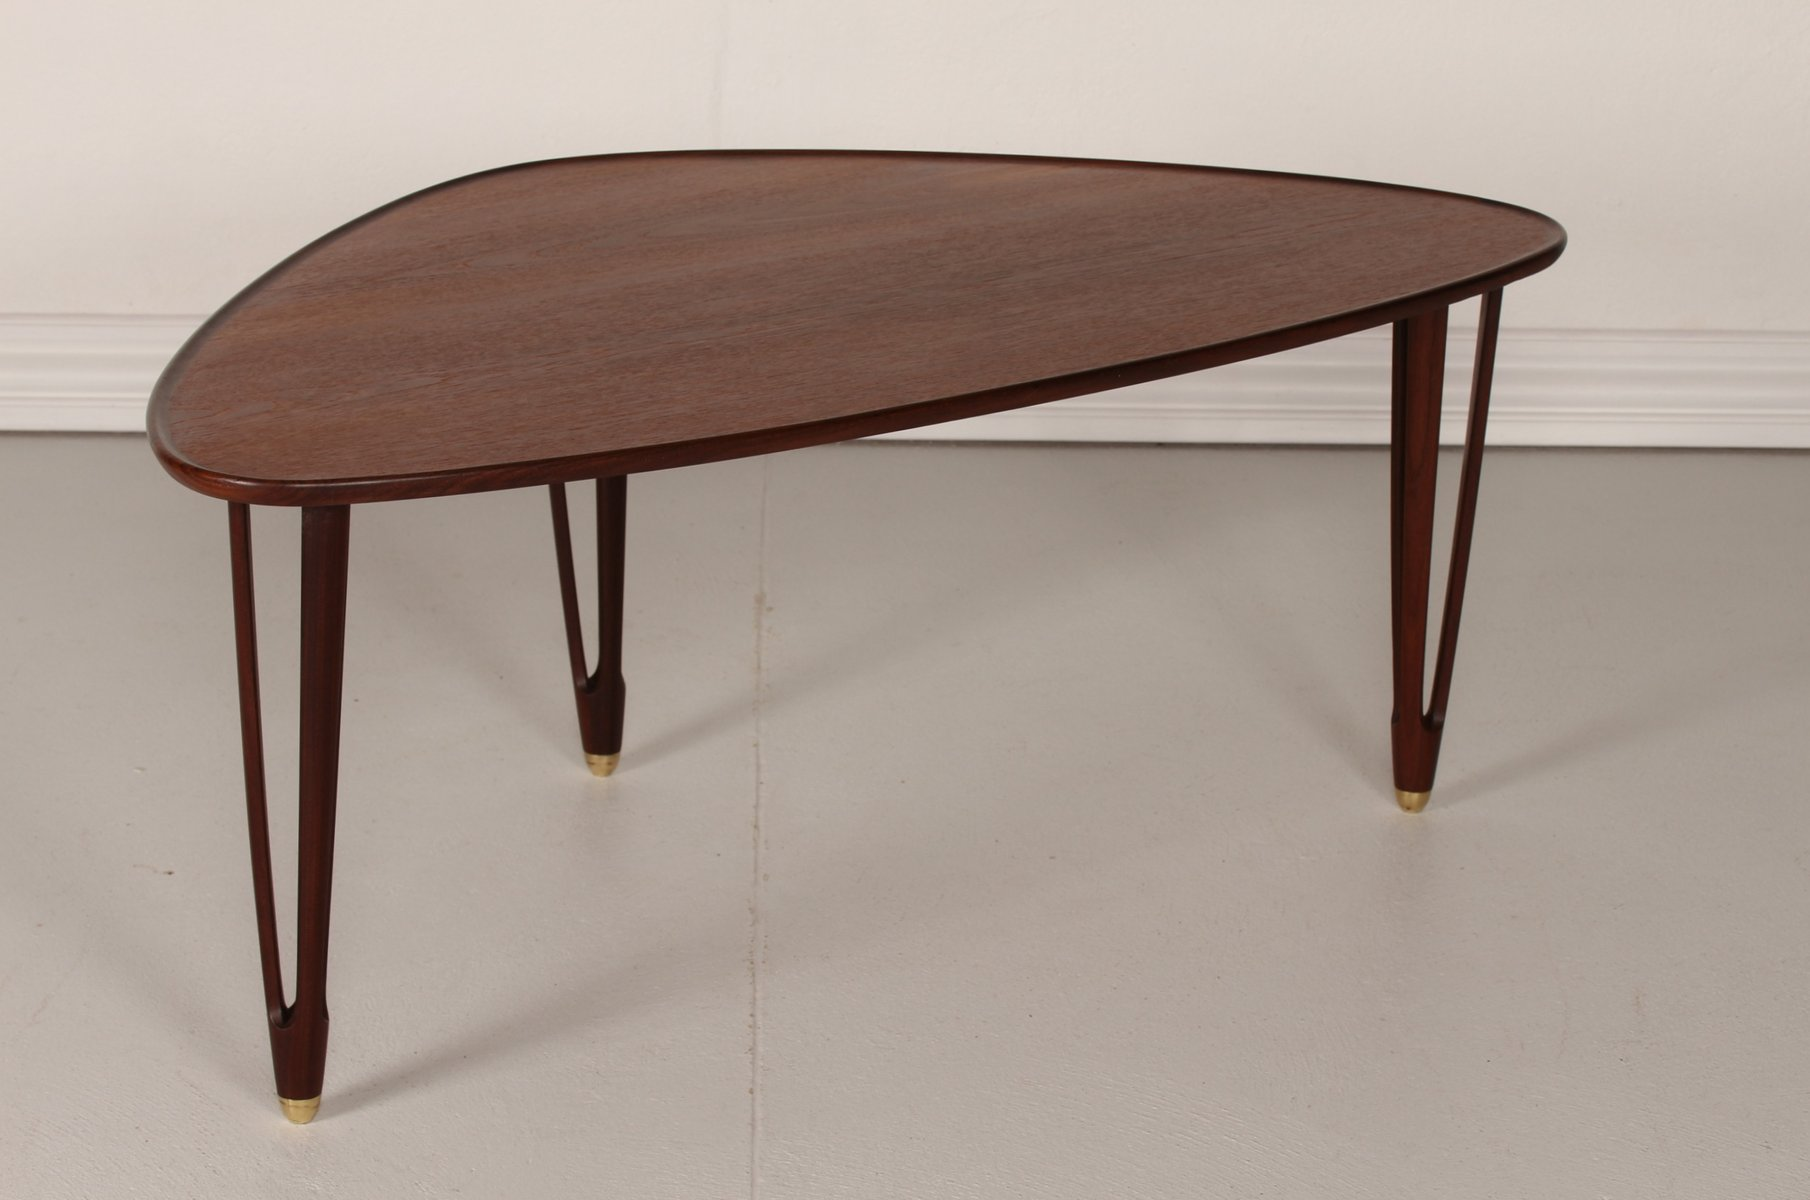 Triangular Table Plans Vintage Danish Triangular Coffee Table In Teak 1950s For